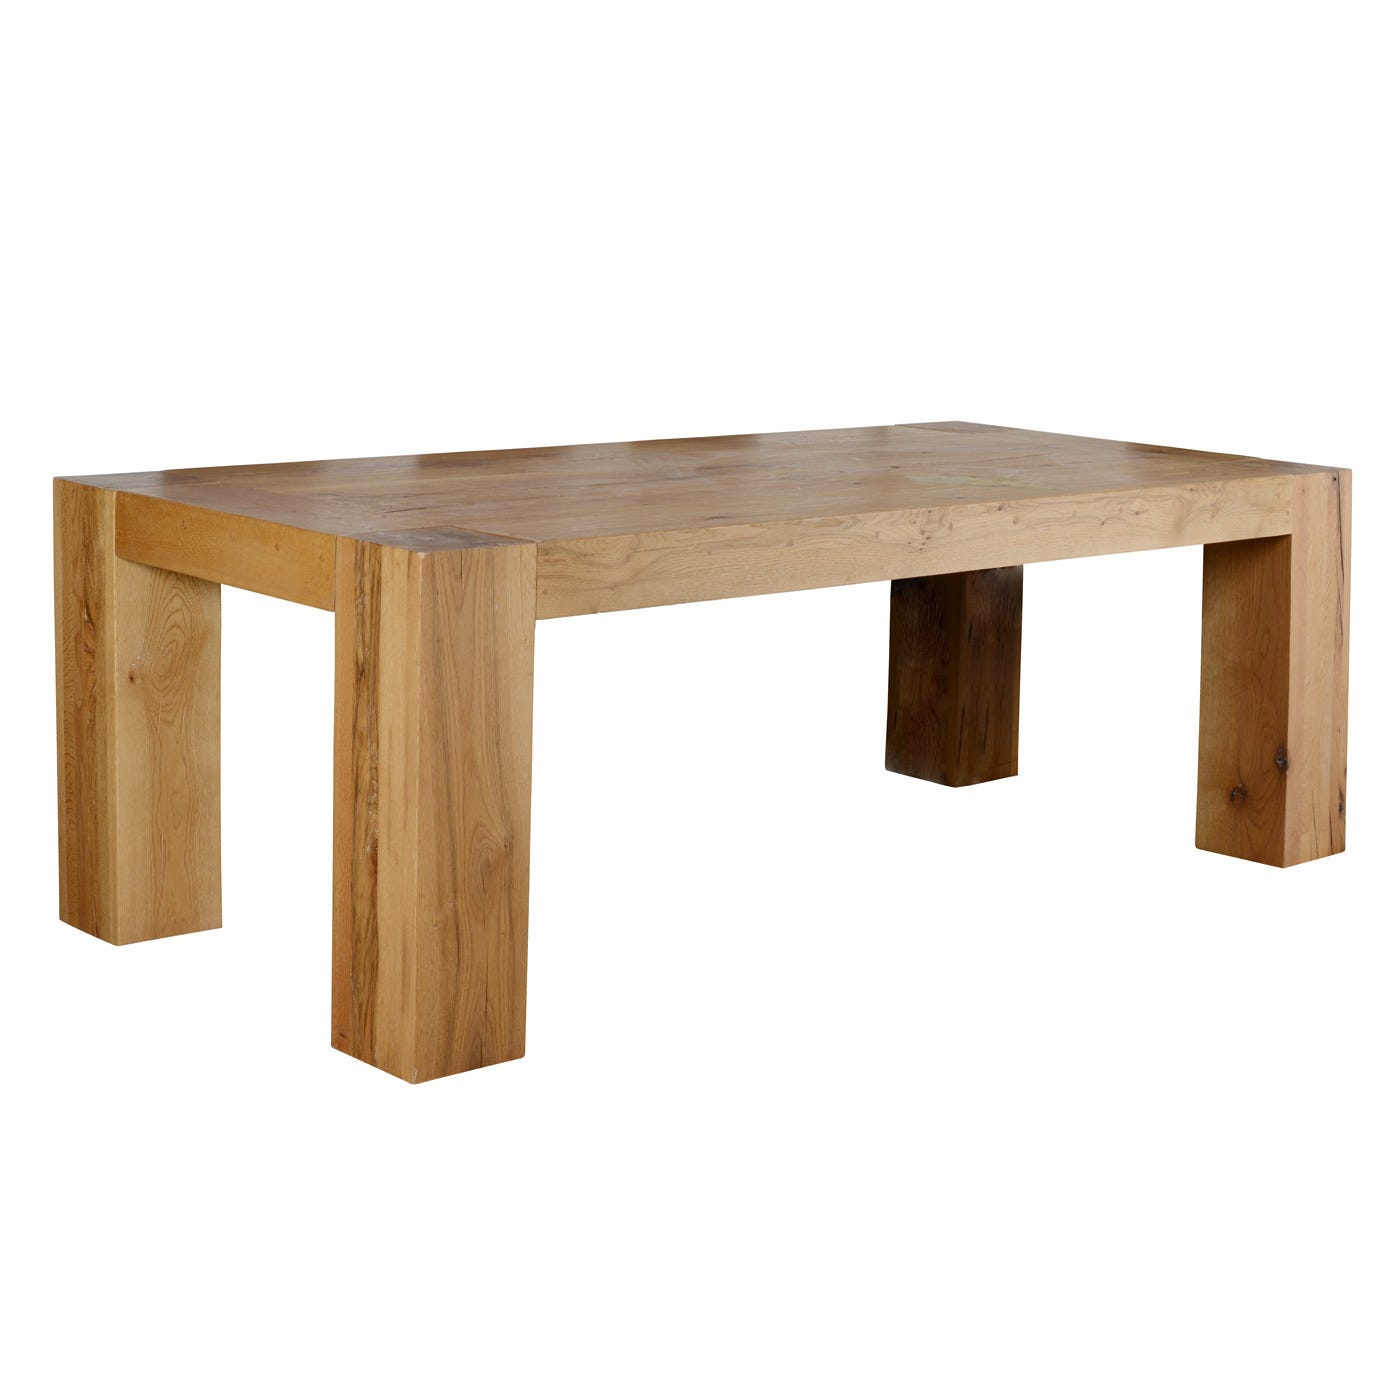 Umbrian Table